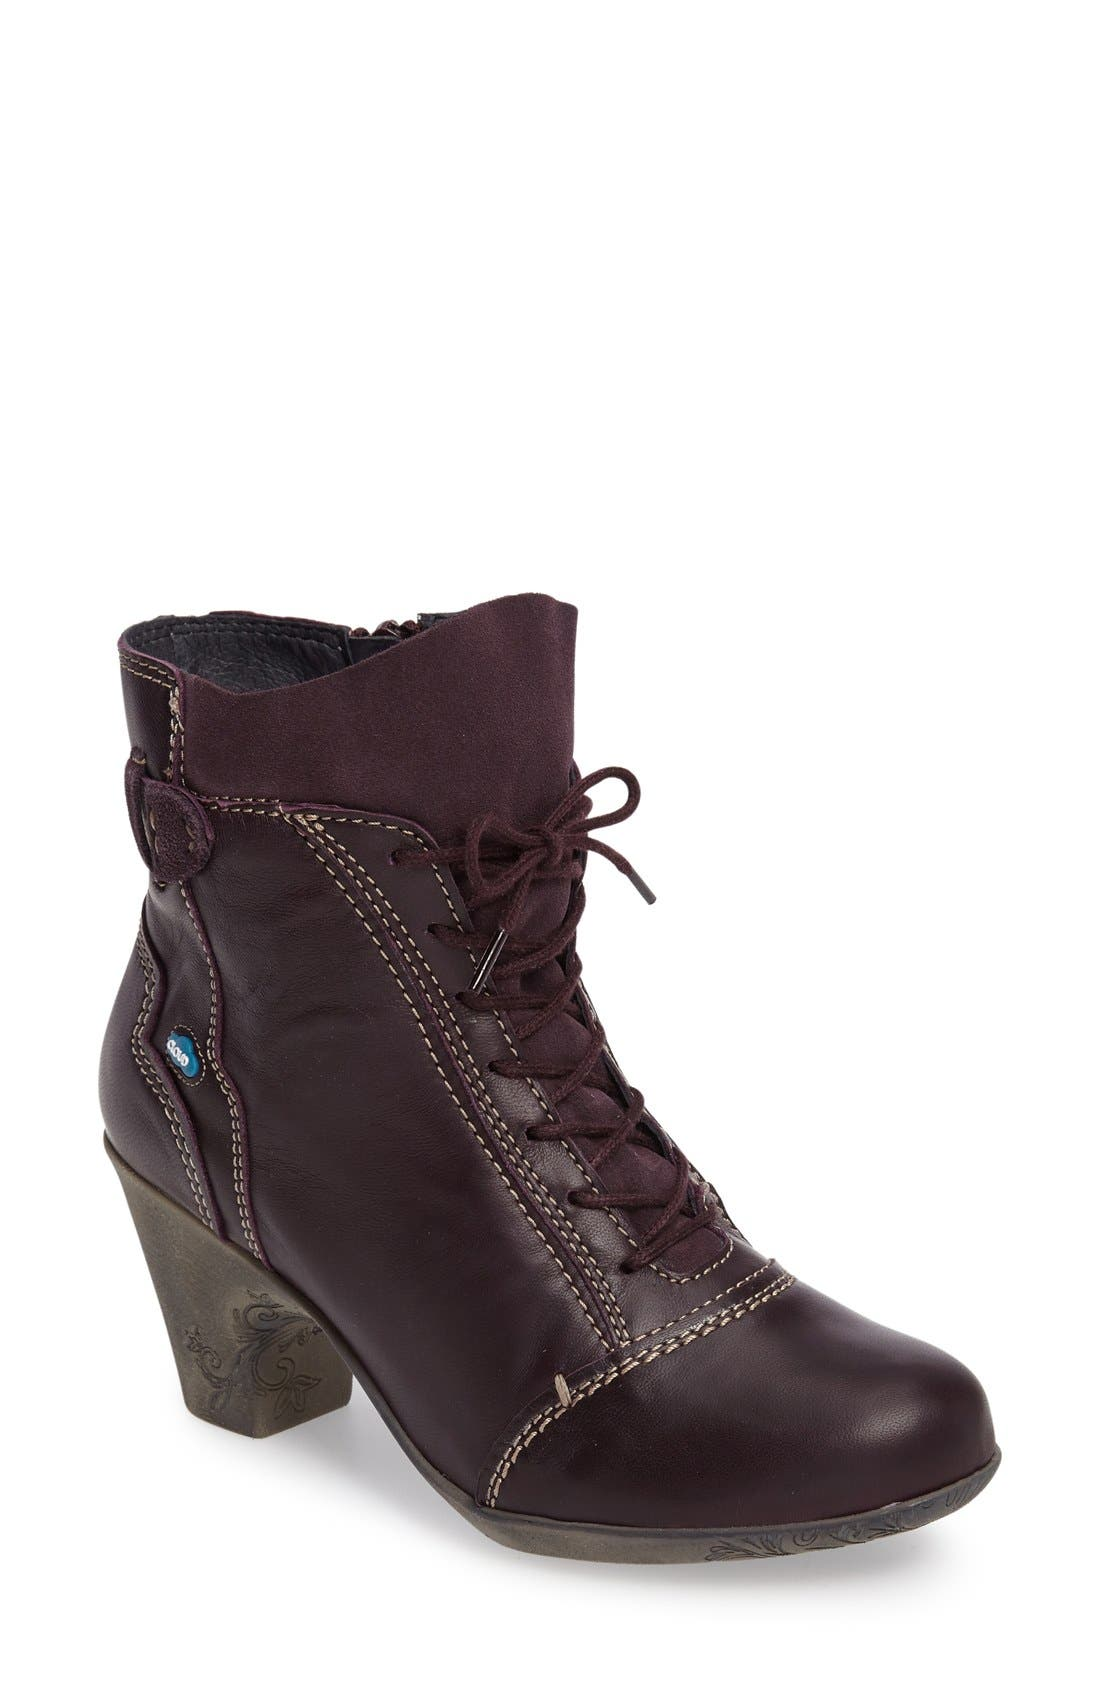 'Jesse' Lace-Up Bootie,                             Main thumbnail 1, color,                             Aubergine Leather